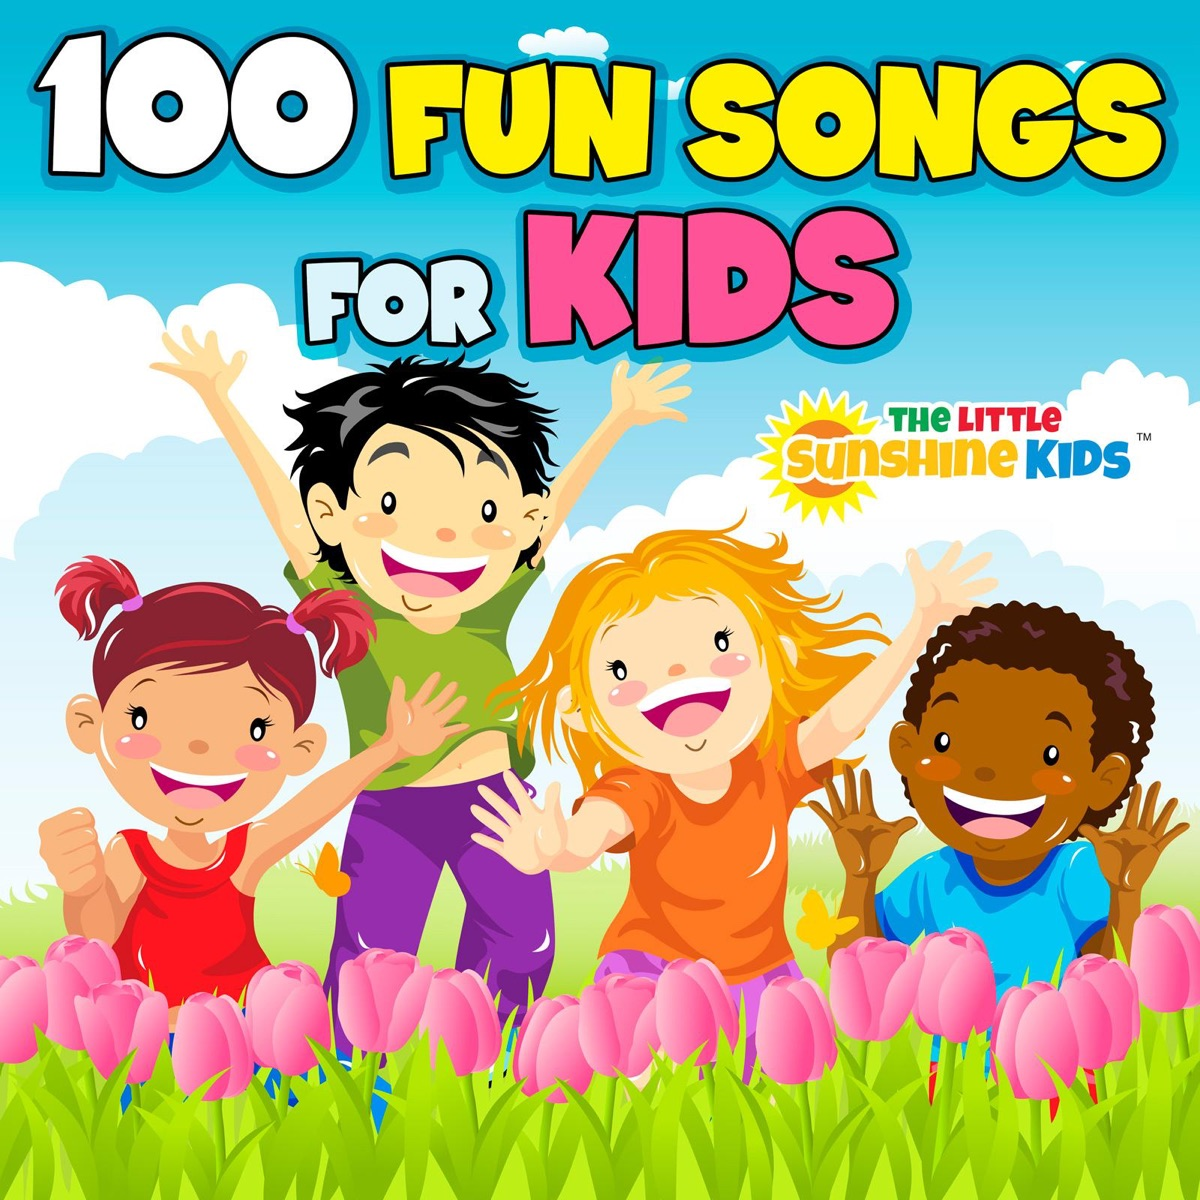 100 Fun Songs for Kids Album Cover by The Little Sunshine Kids